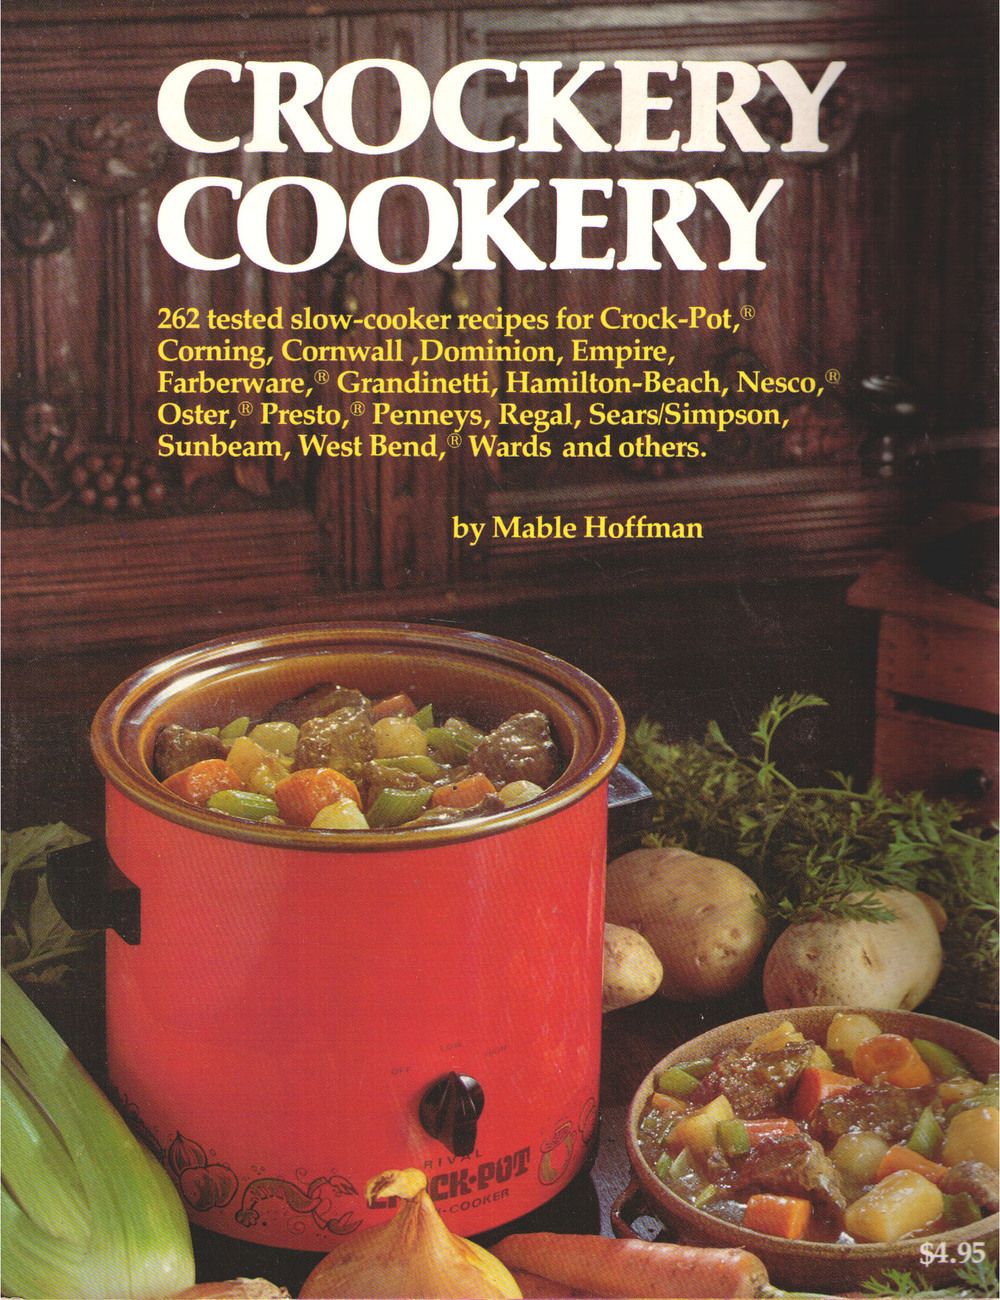 Crockerycookery